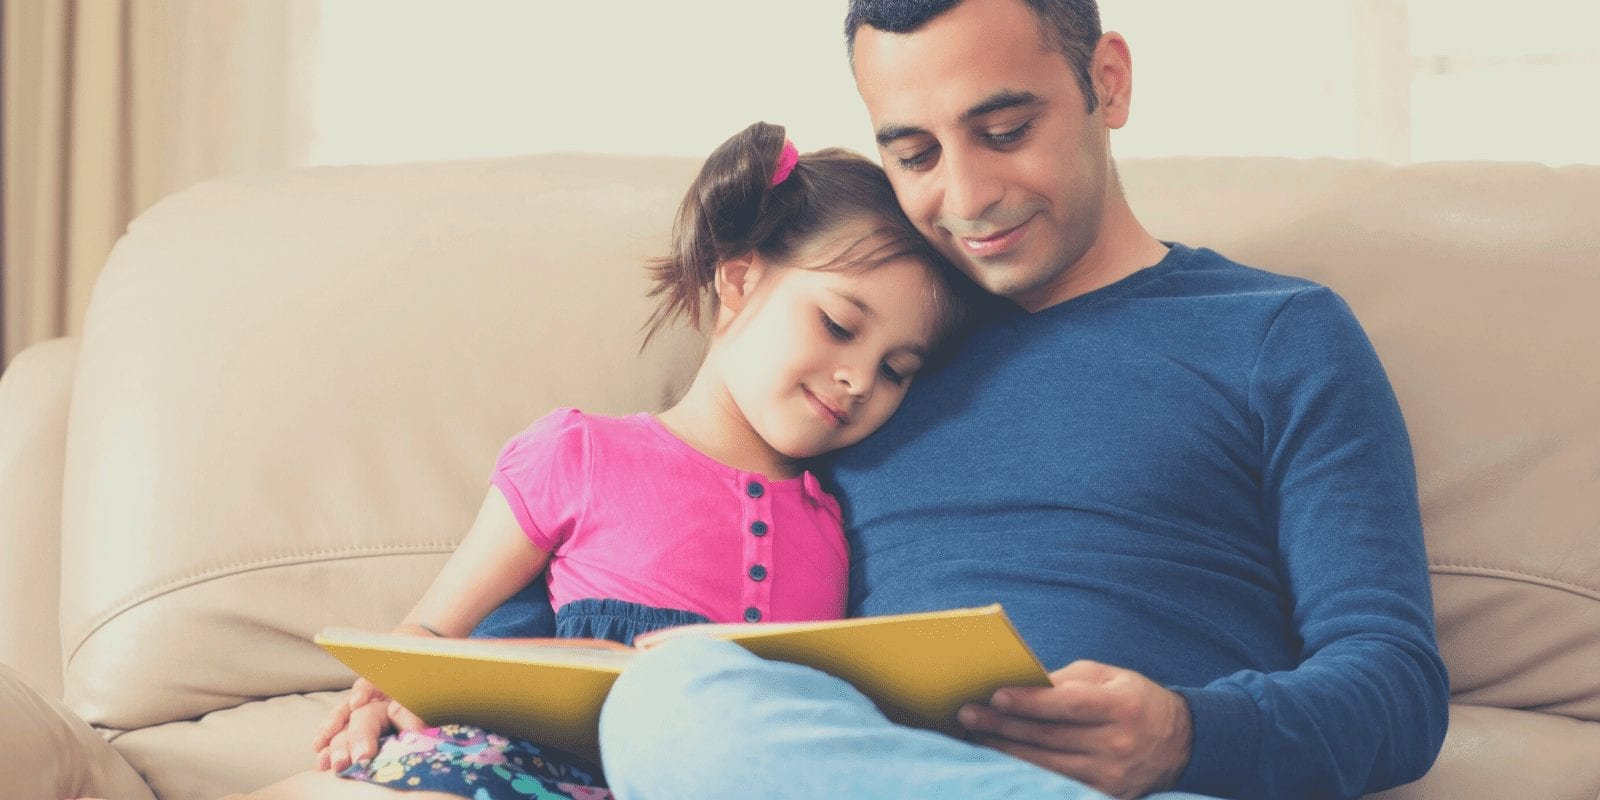 A dad and a daughter are sitting on the couch reading